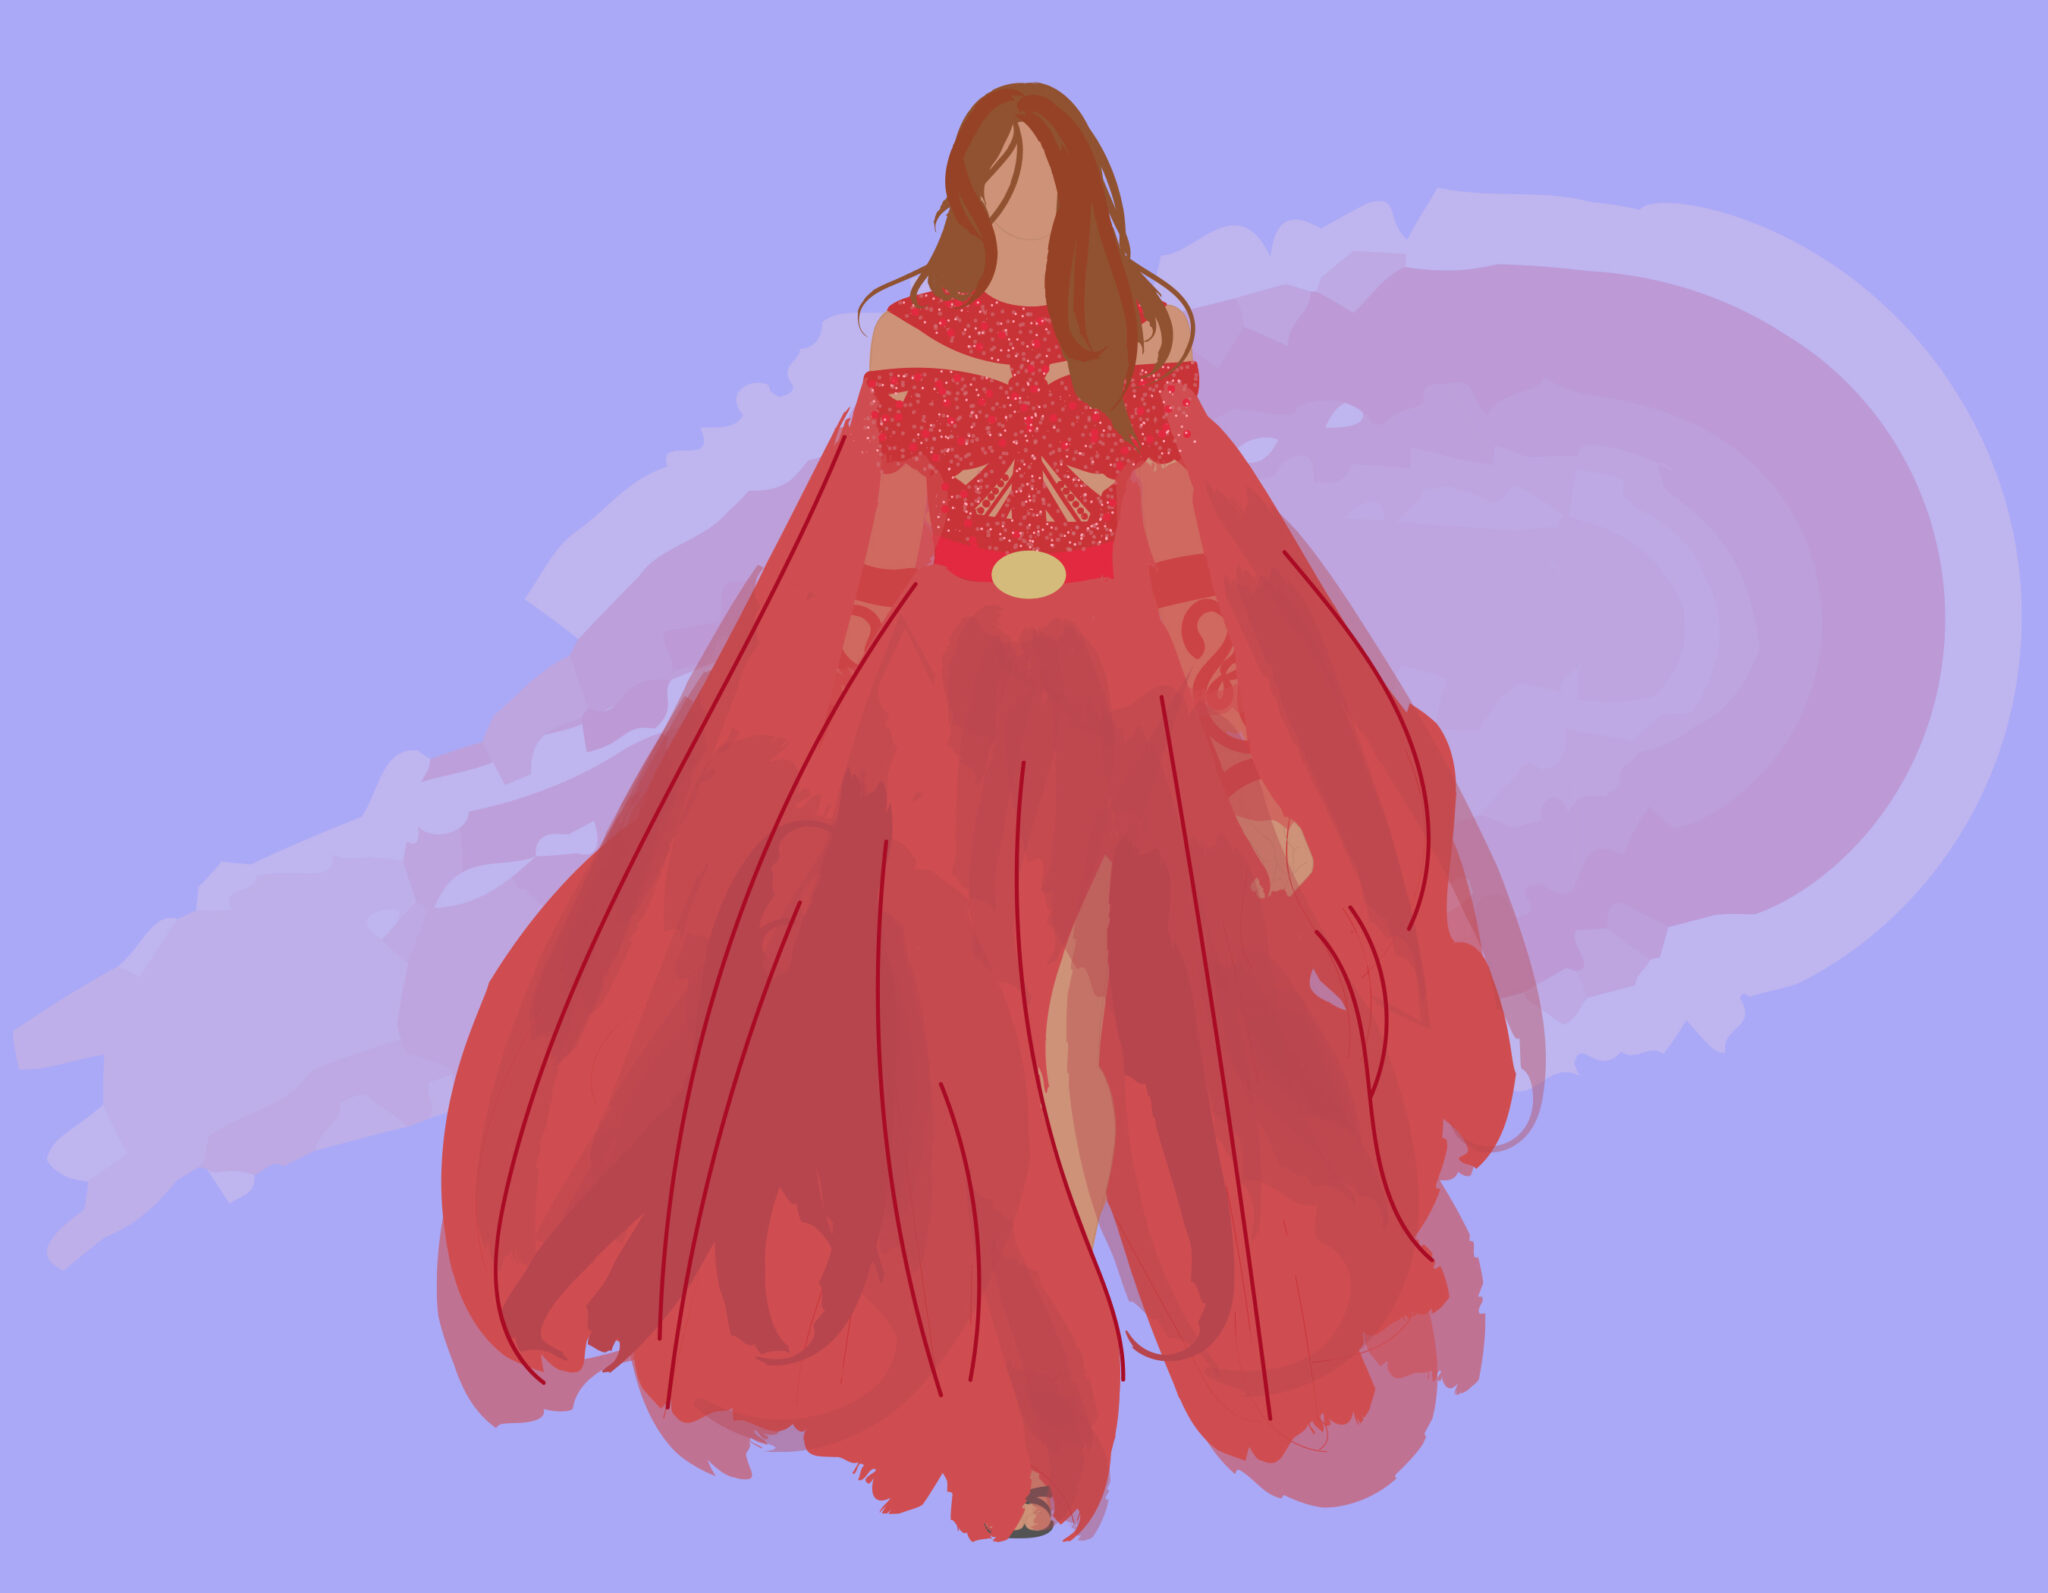 Illustration of a female figure dressed in an Egyptian-inspired red gown, embellished with a gold belt.